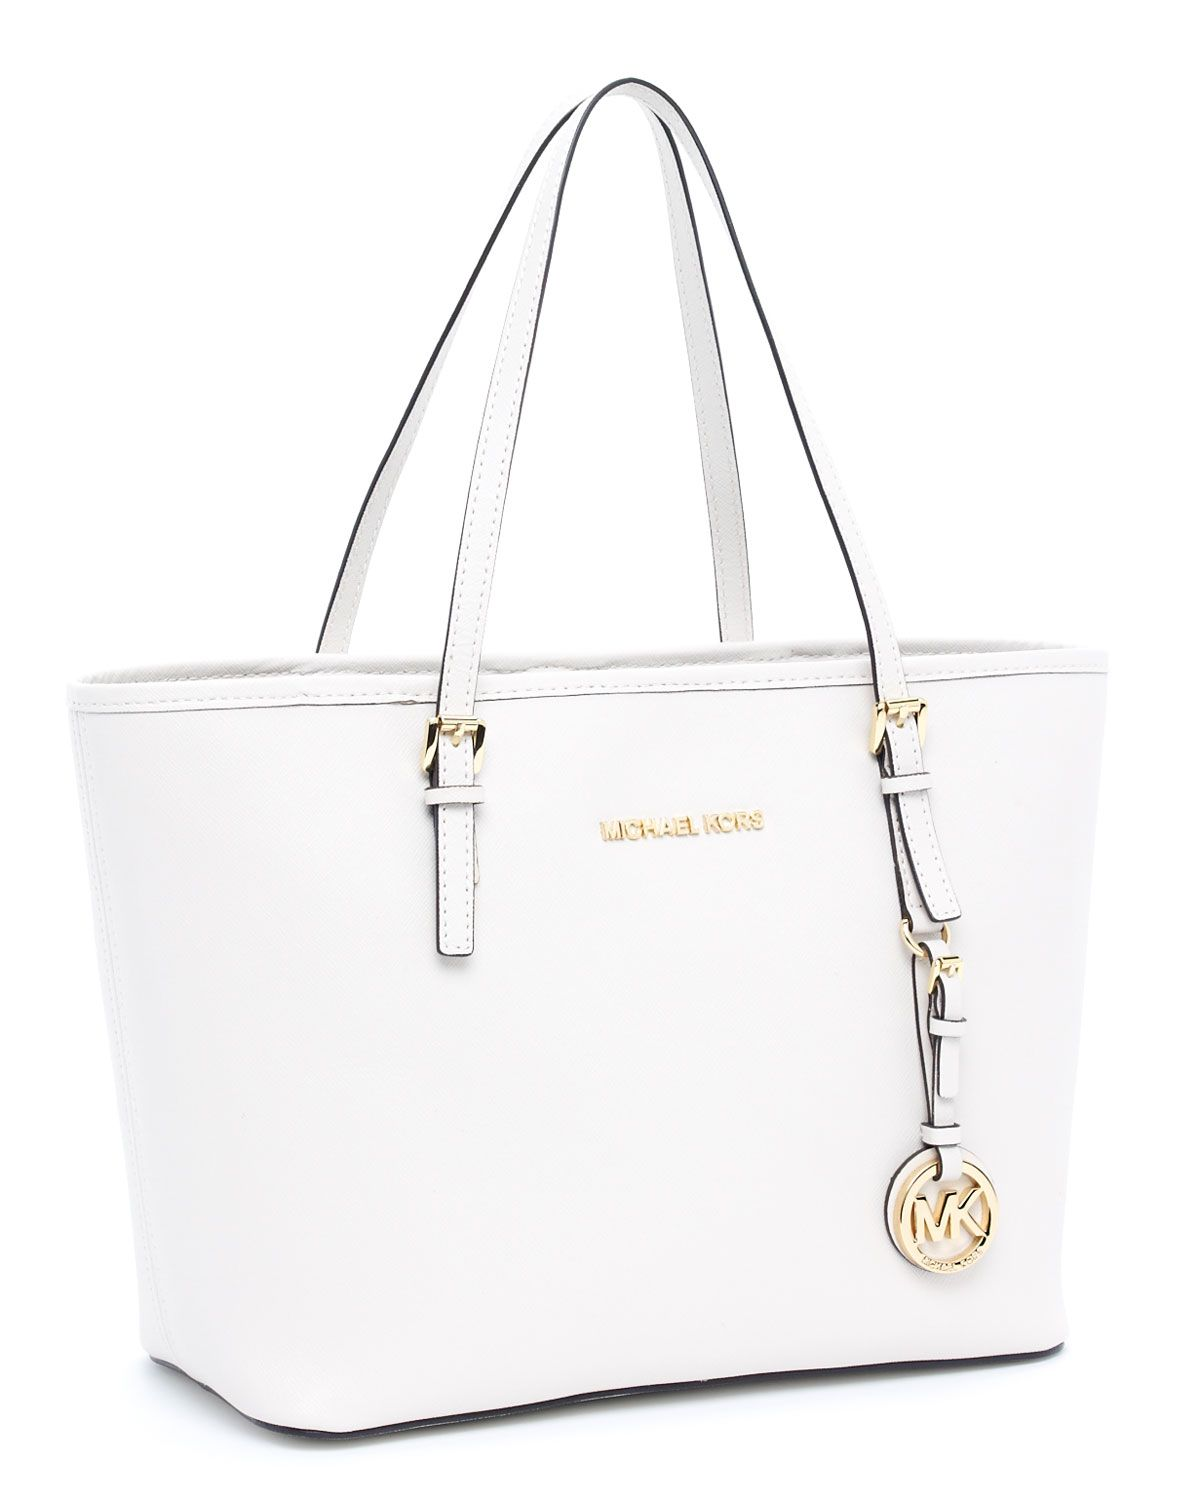 Michael Kors Jet Set Travel Small Travel Tote in white